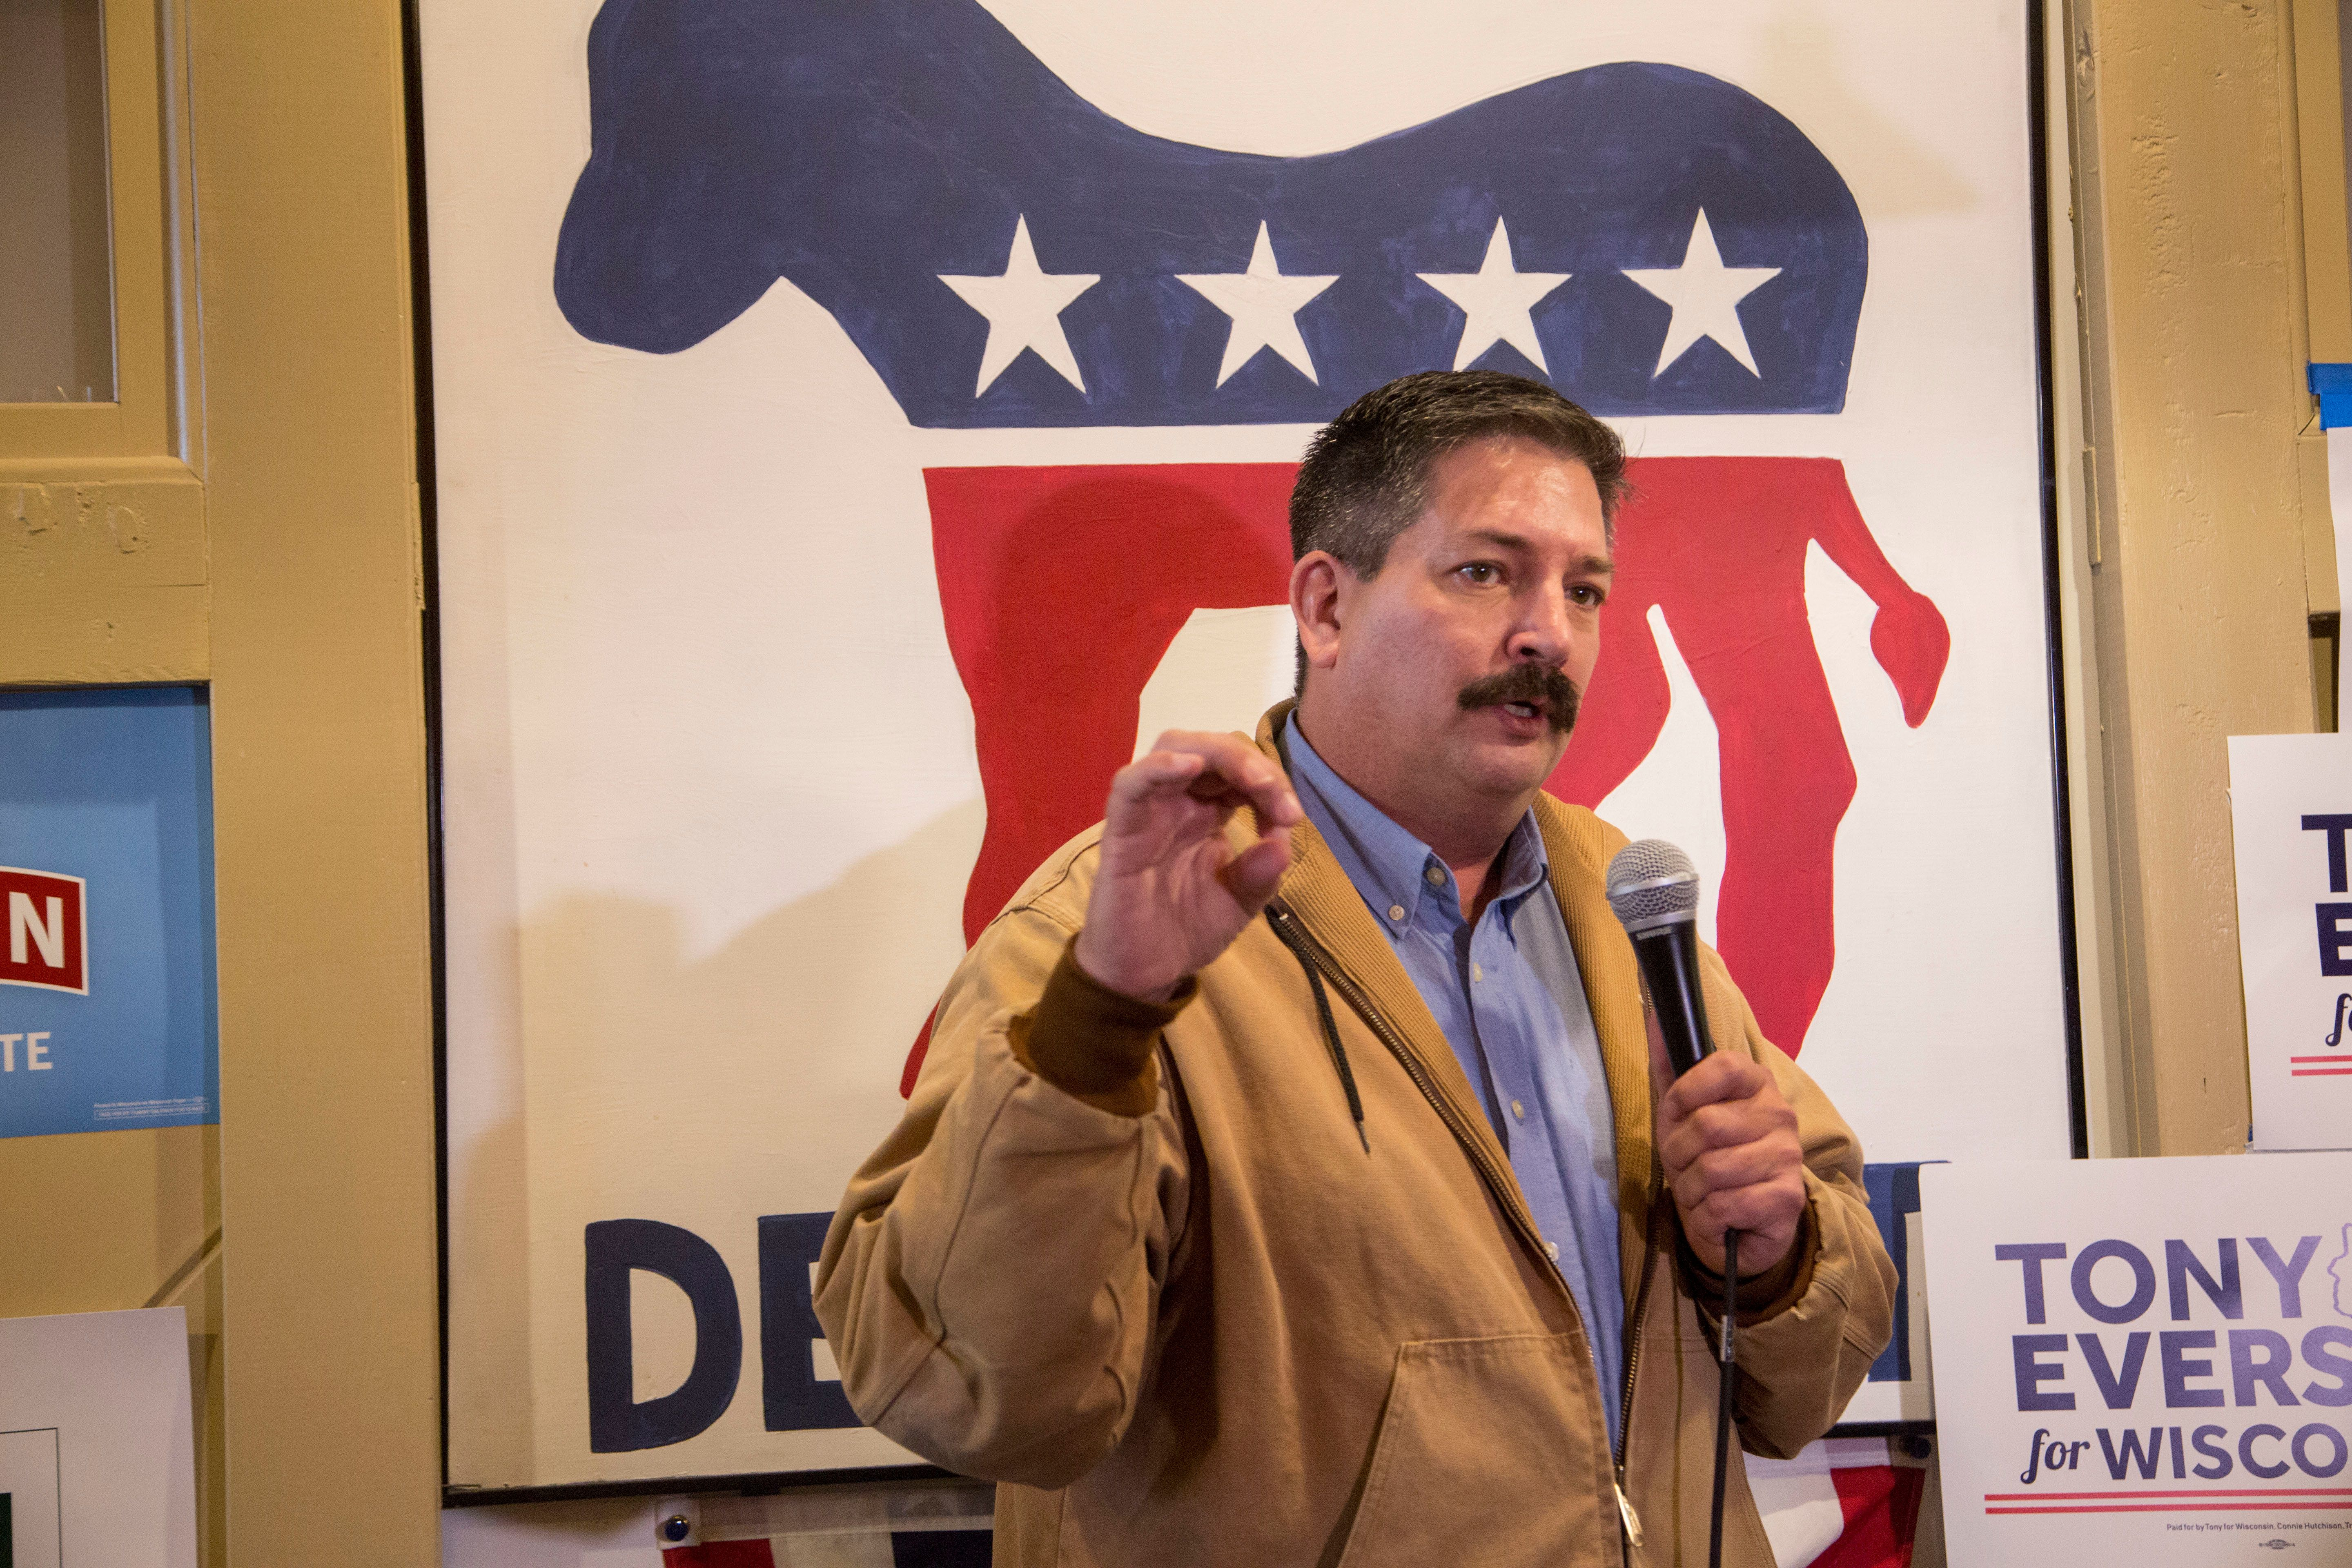 Democrat Randy Bryce speaks at a campaign event in Racine, Wisconsin, on Nov. 4, 2018.